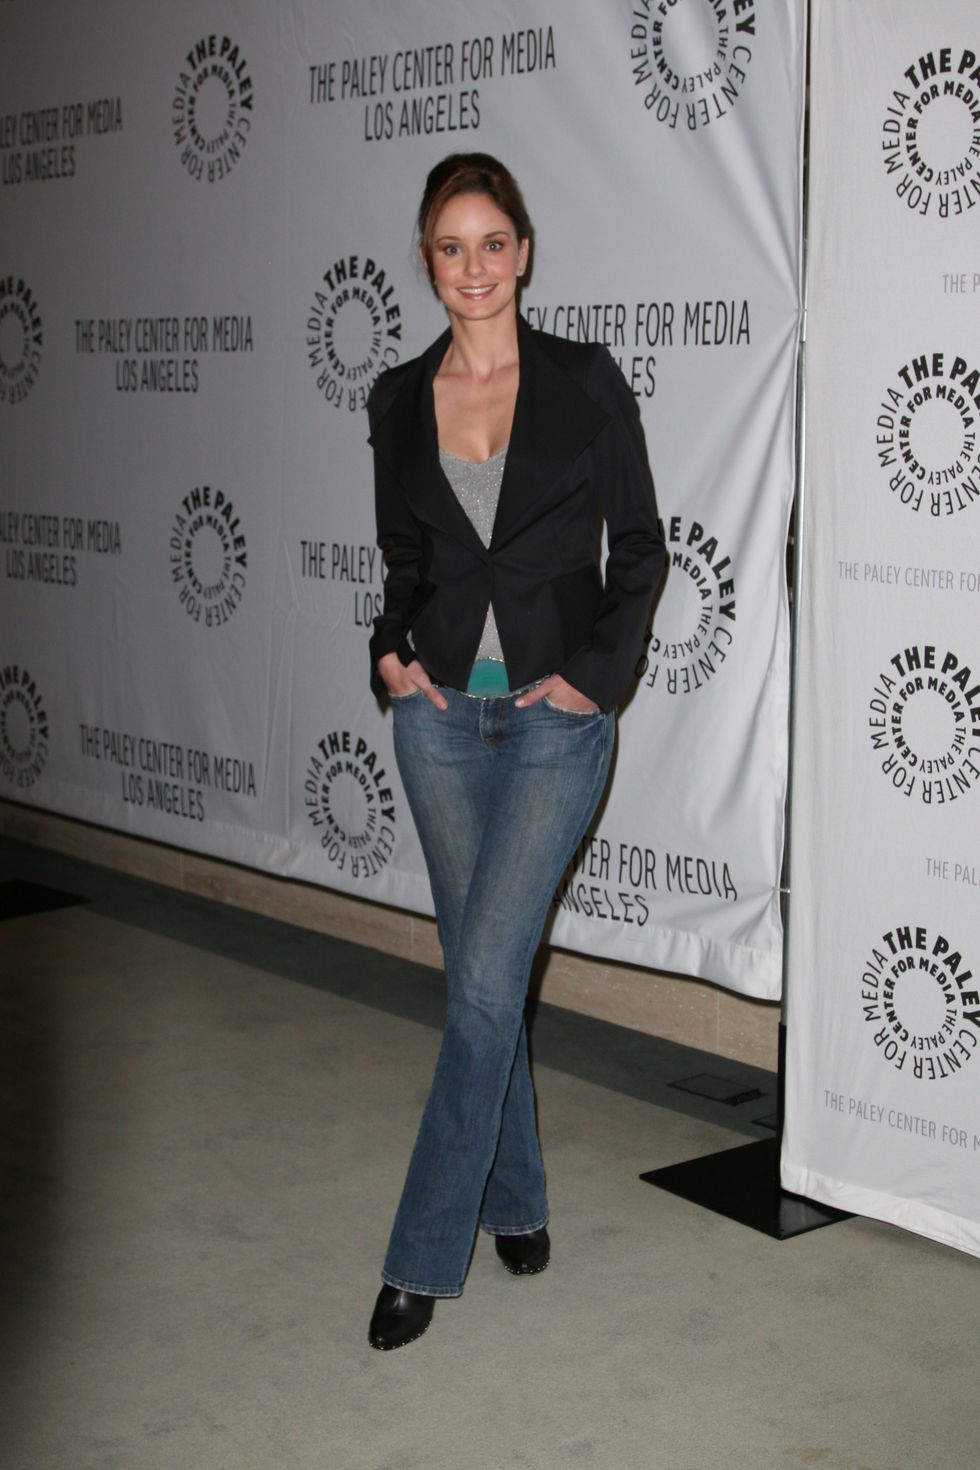 sarah-wayne-callies-the-paley-center-for-media-presents-prison-break-01